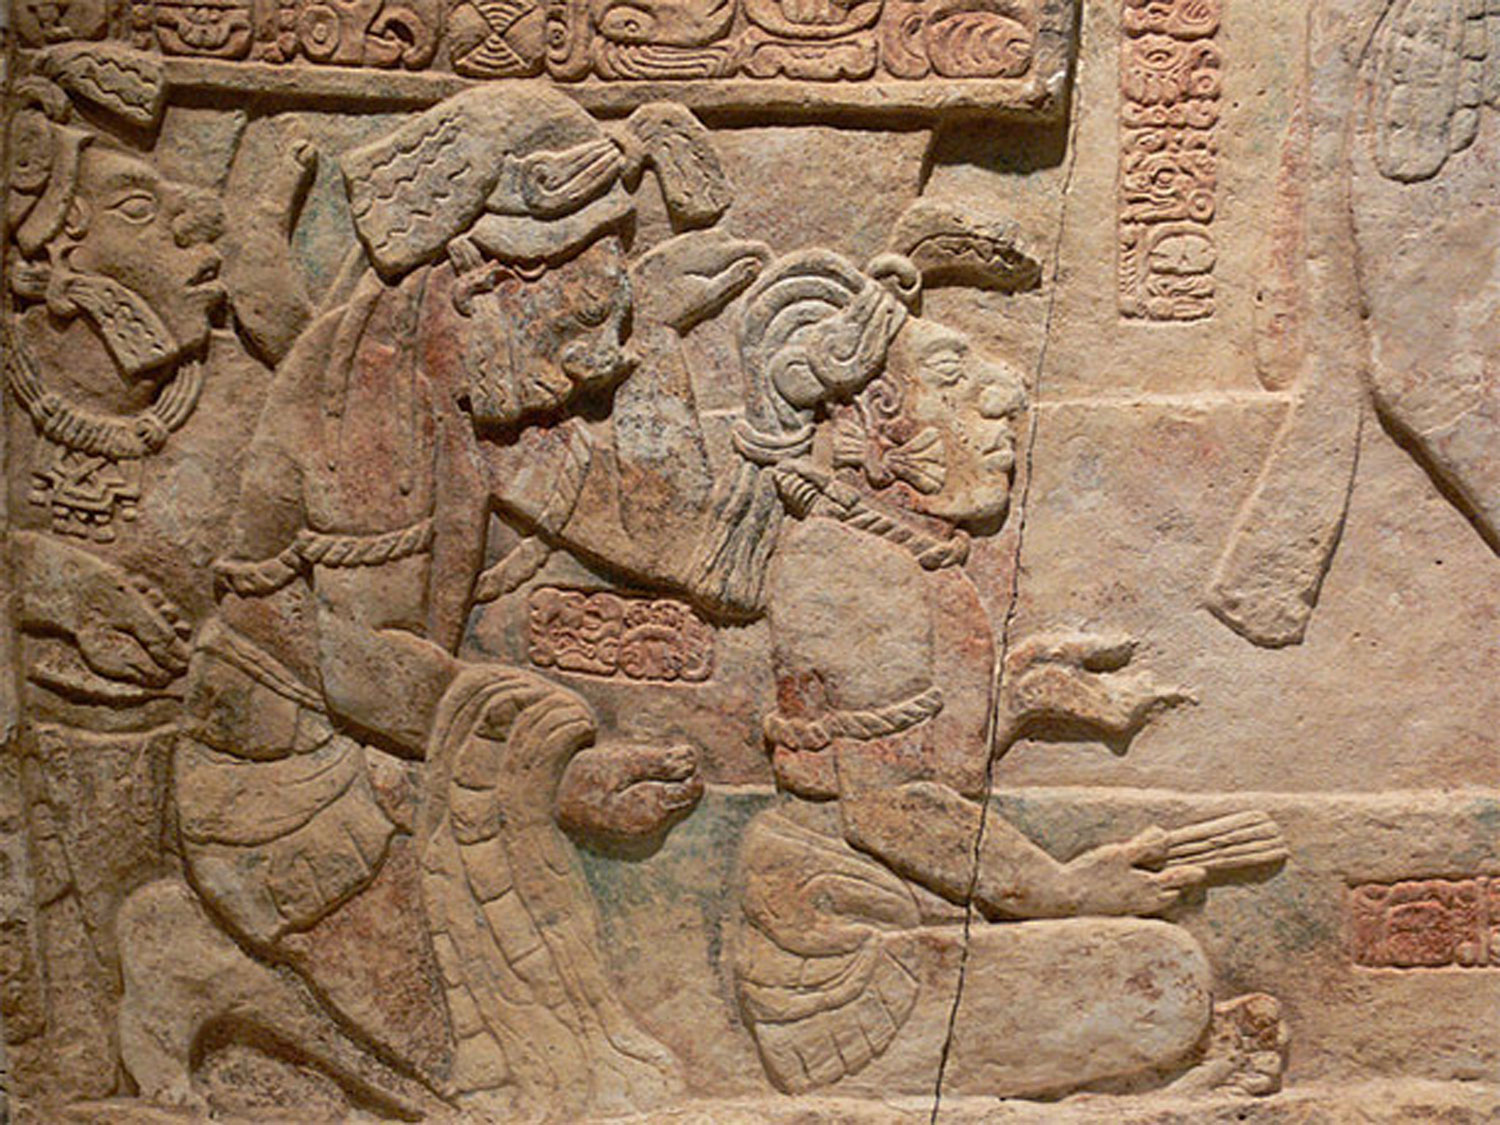 Three captives are being presented to the king Itamnaaj Balam III of Yaxchilán (769-800 AD), with paper slips in their ears.